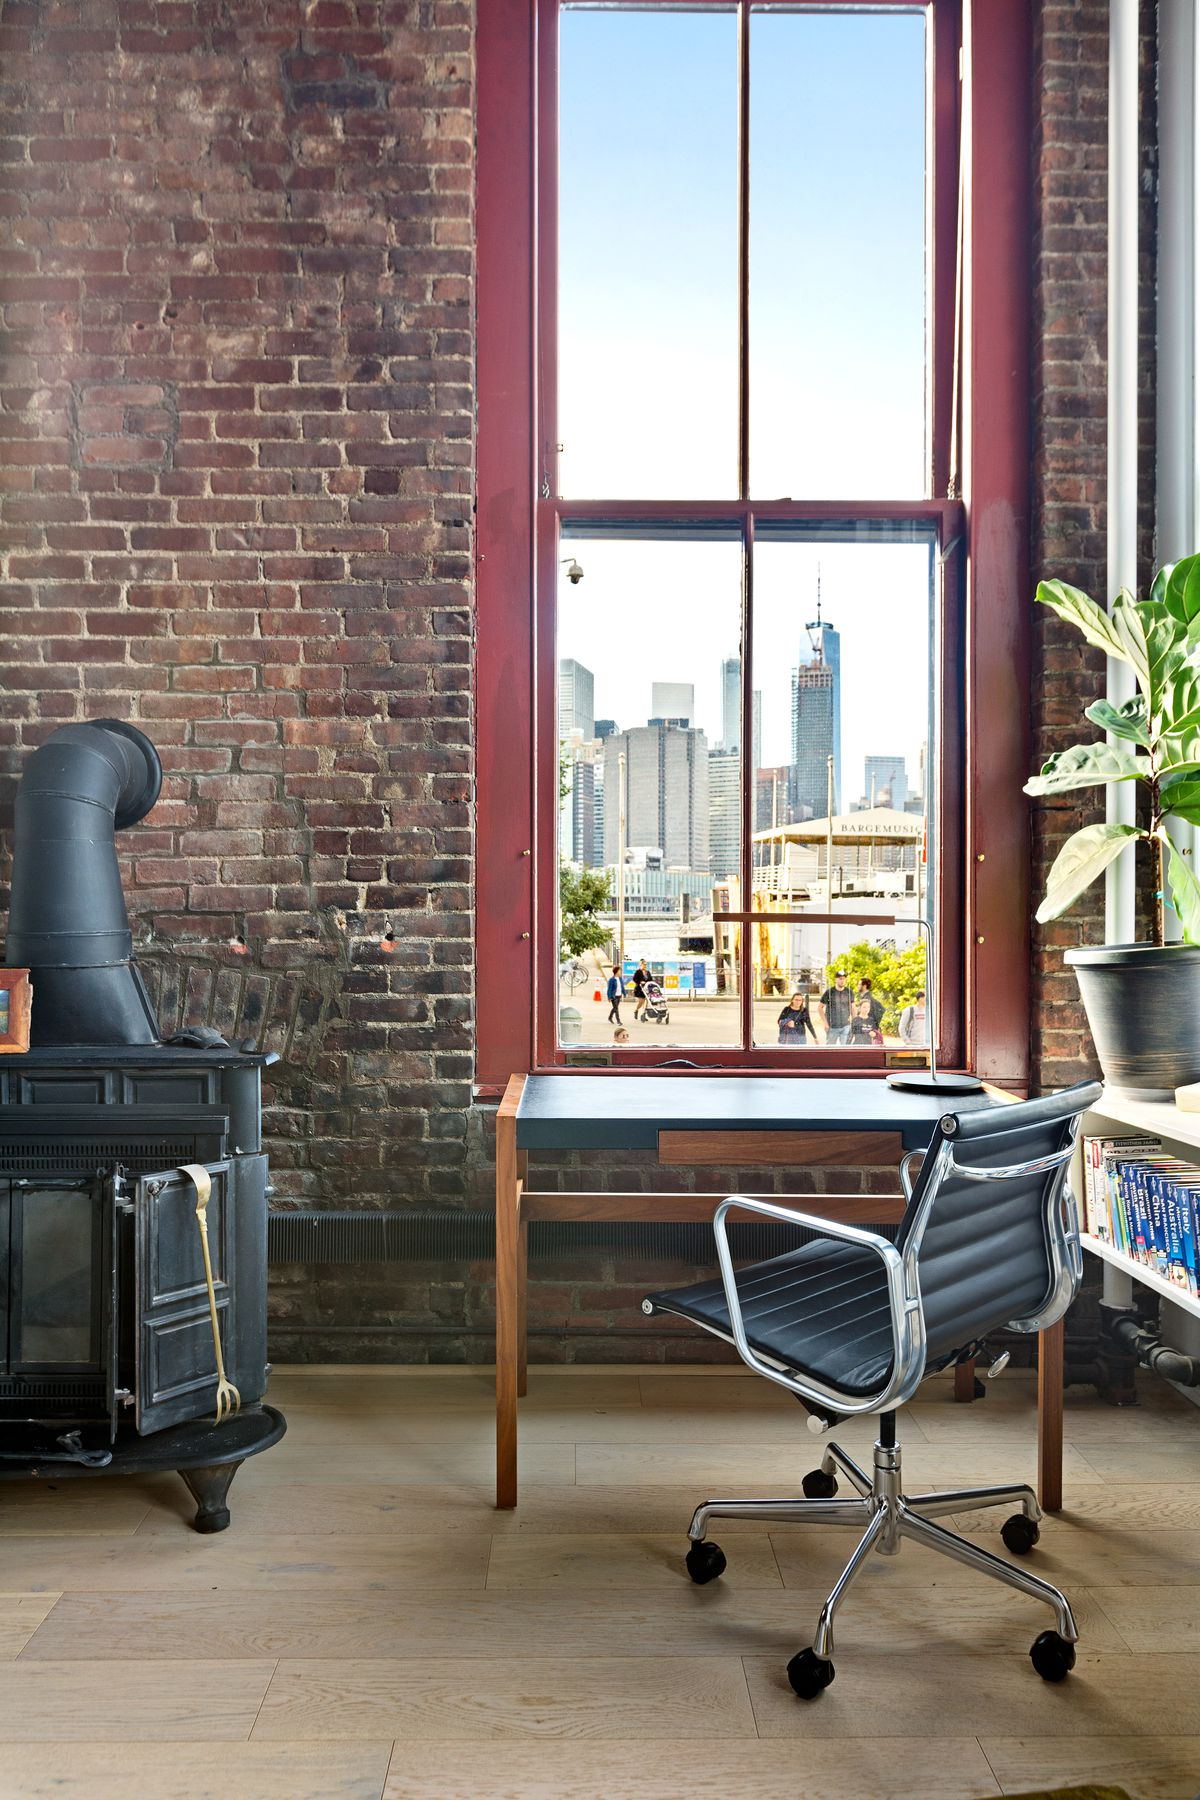 A large window with views of Lower Manhattan.